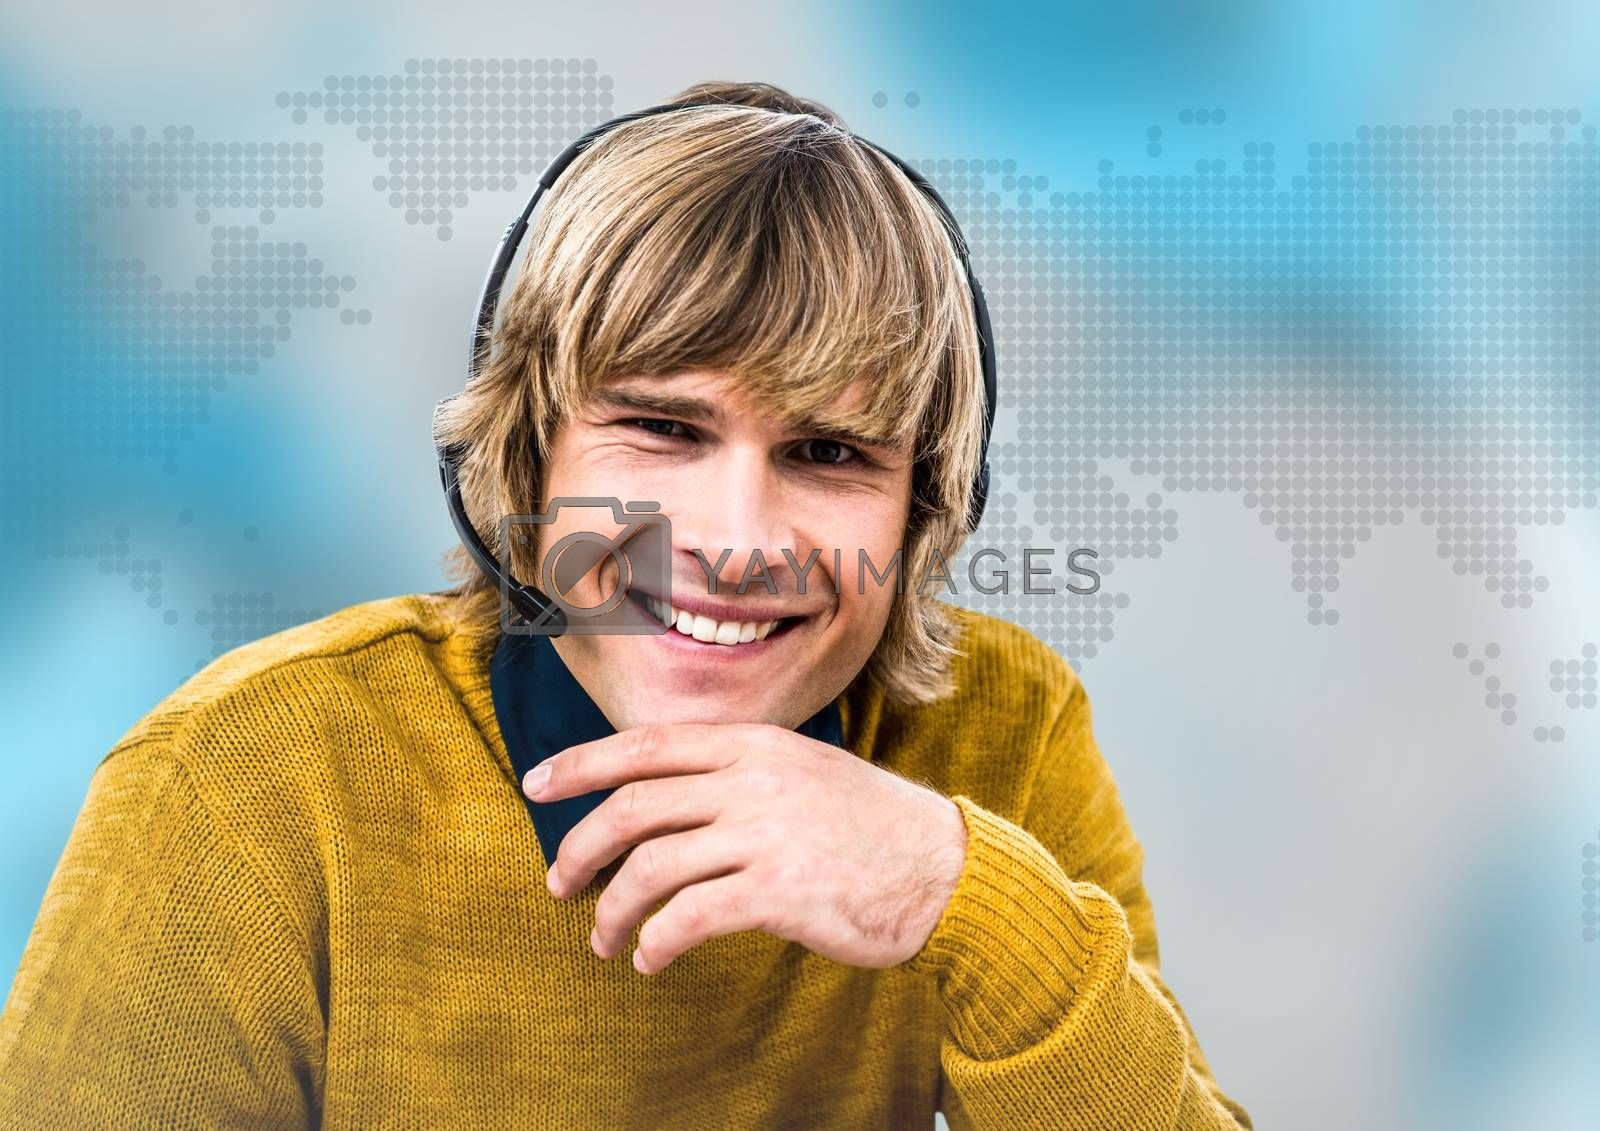 Digital composite of Travel agent in headset against blue map